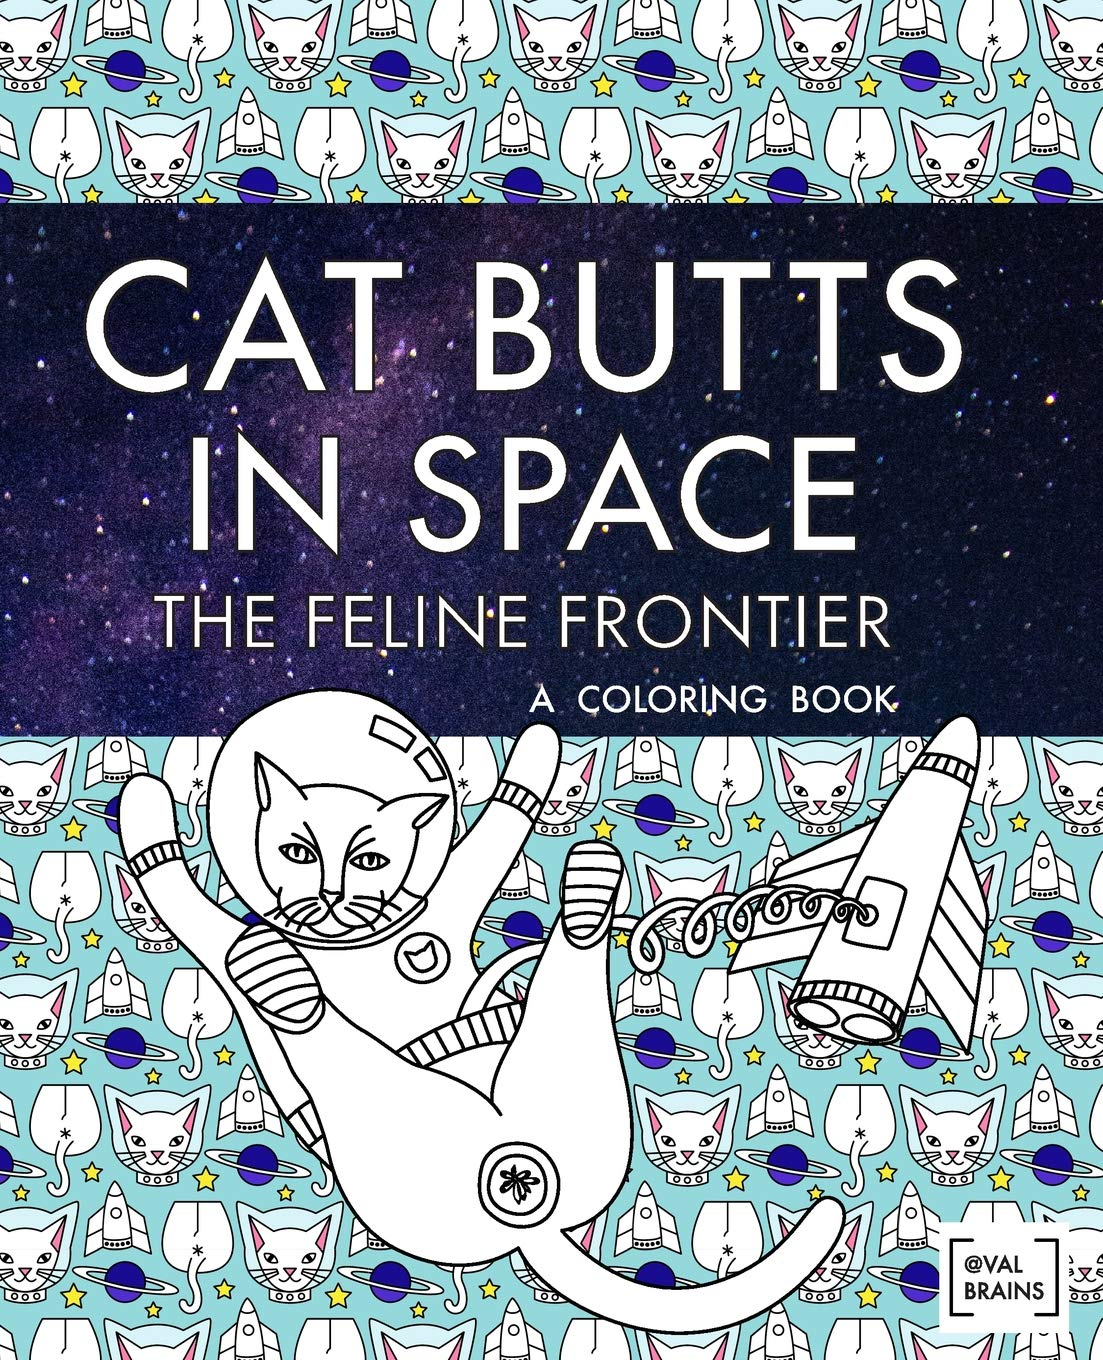 Cat Butts Space Feline Frontier product image